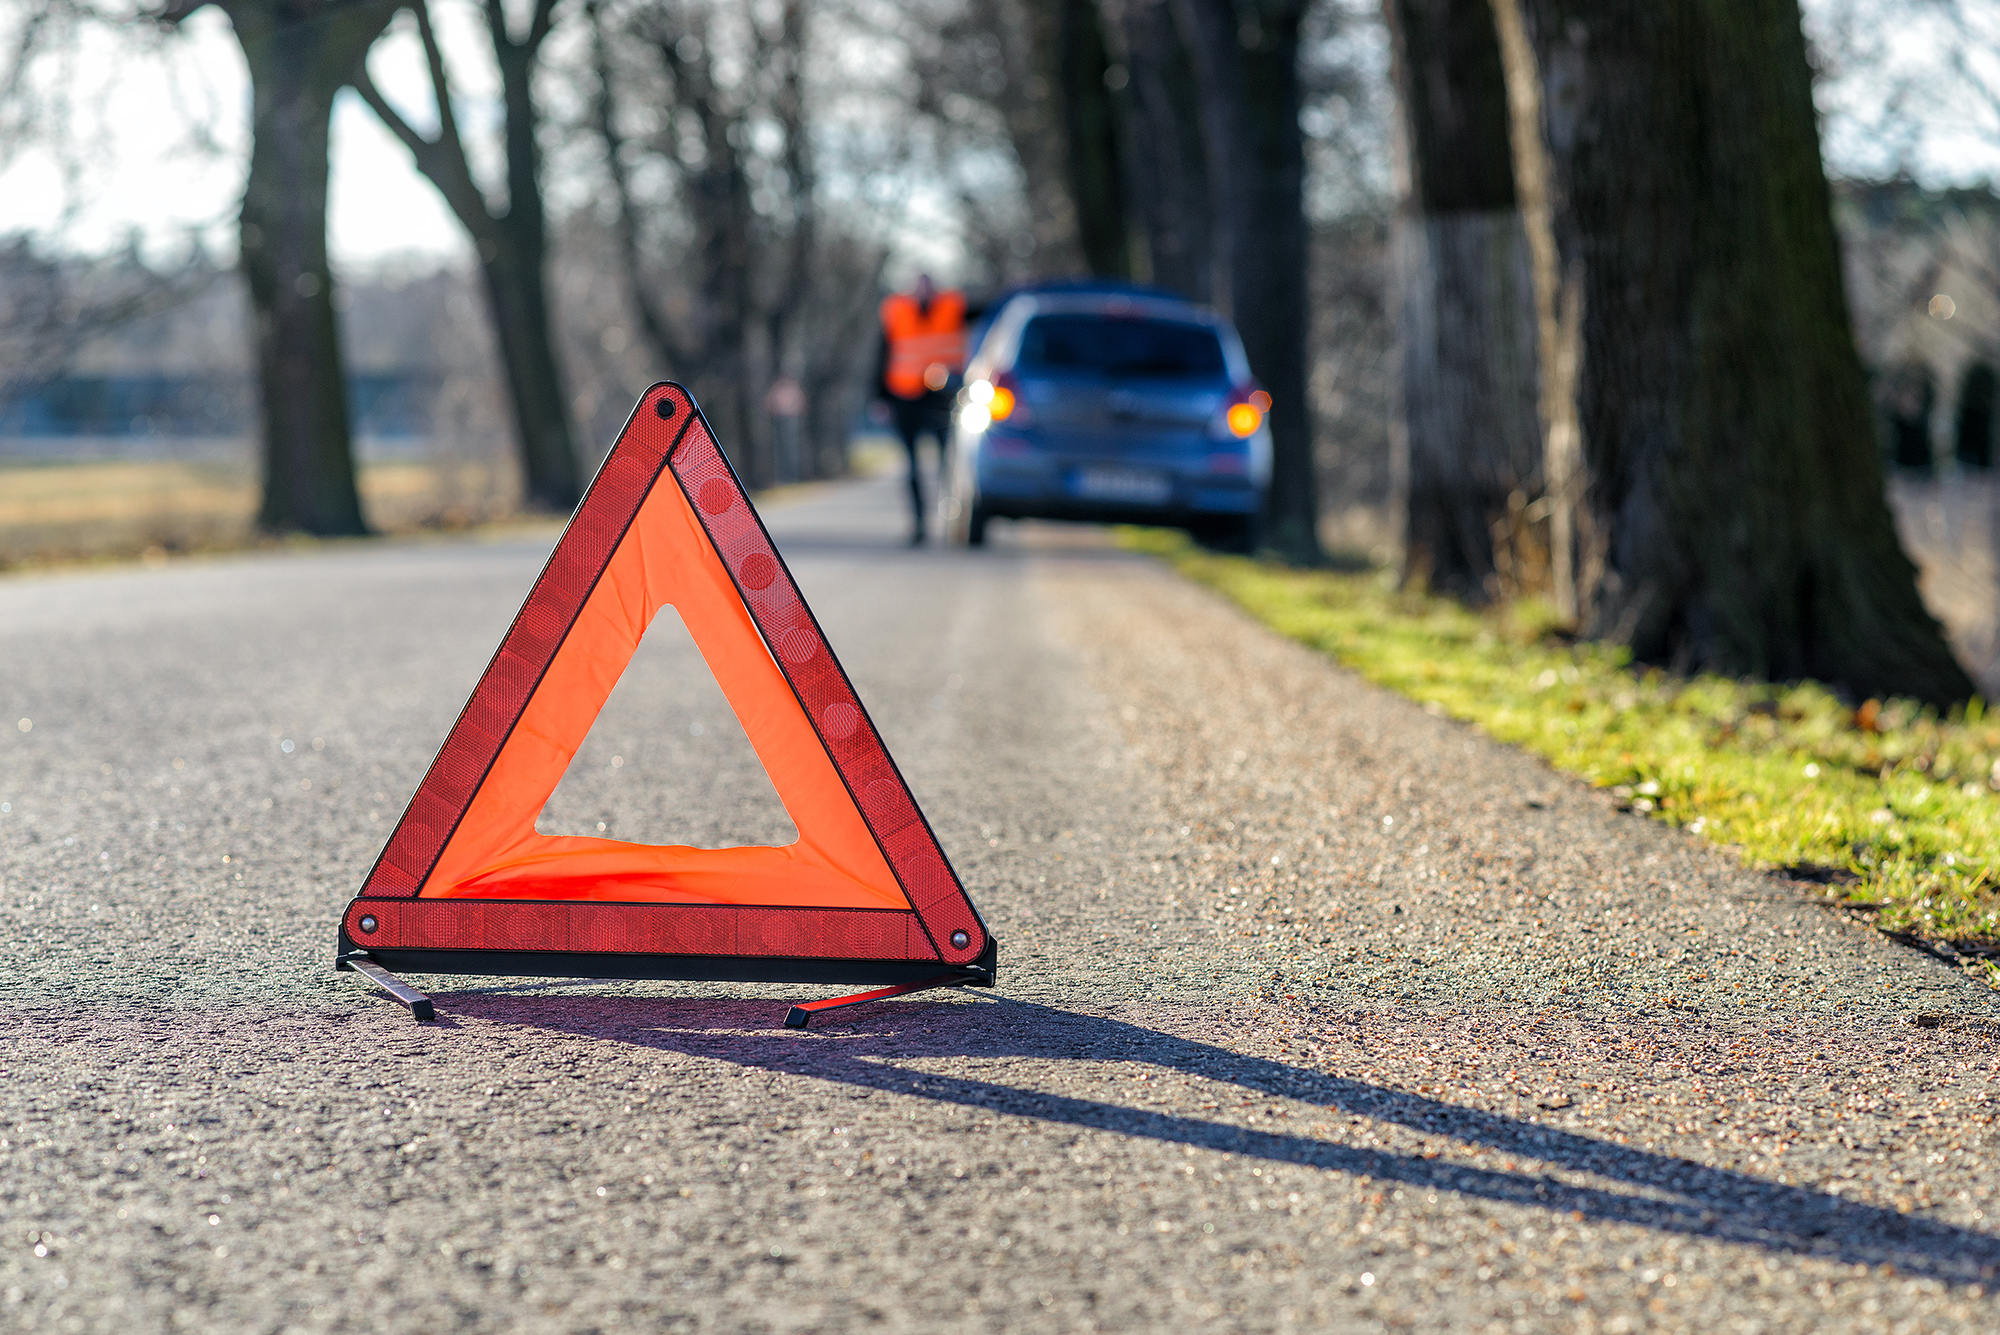 Warning triangle. (Image: Shutterstock)